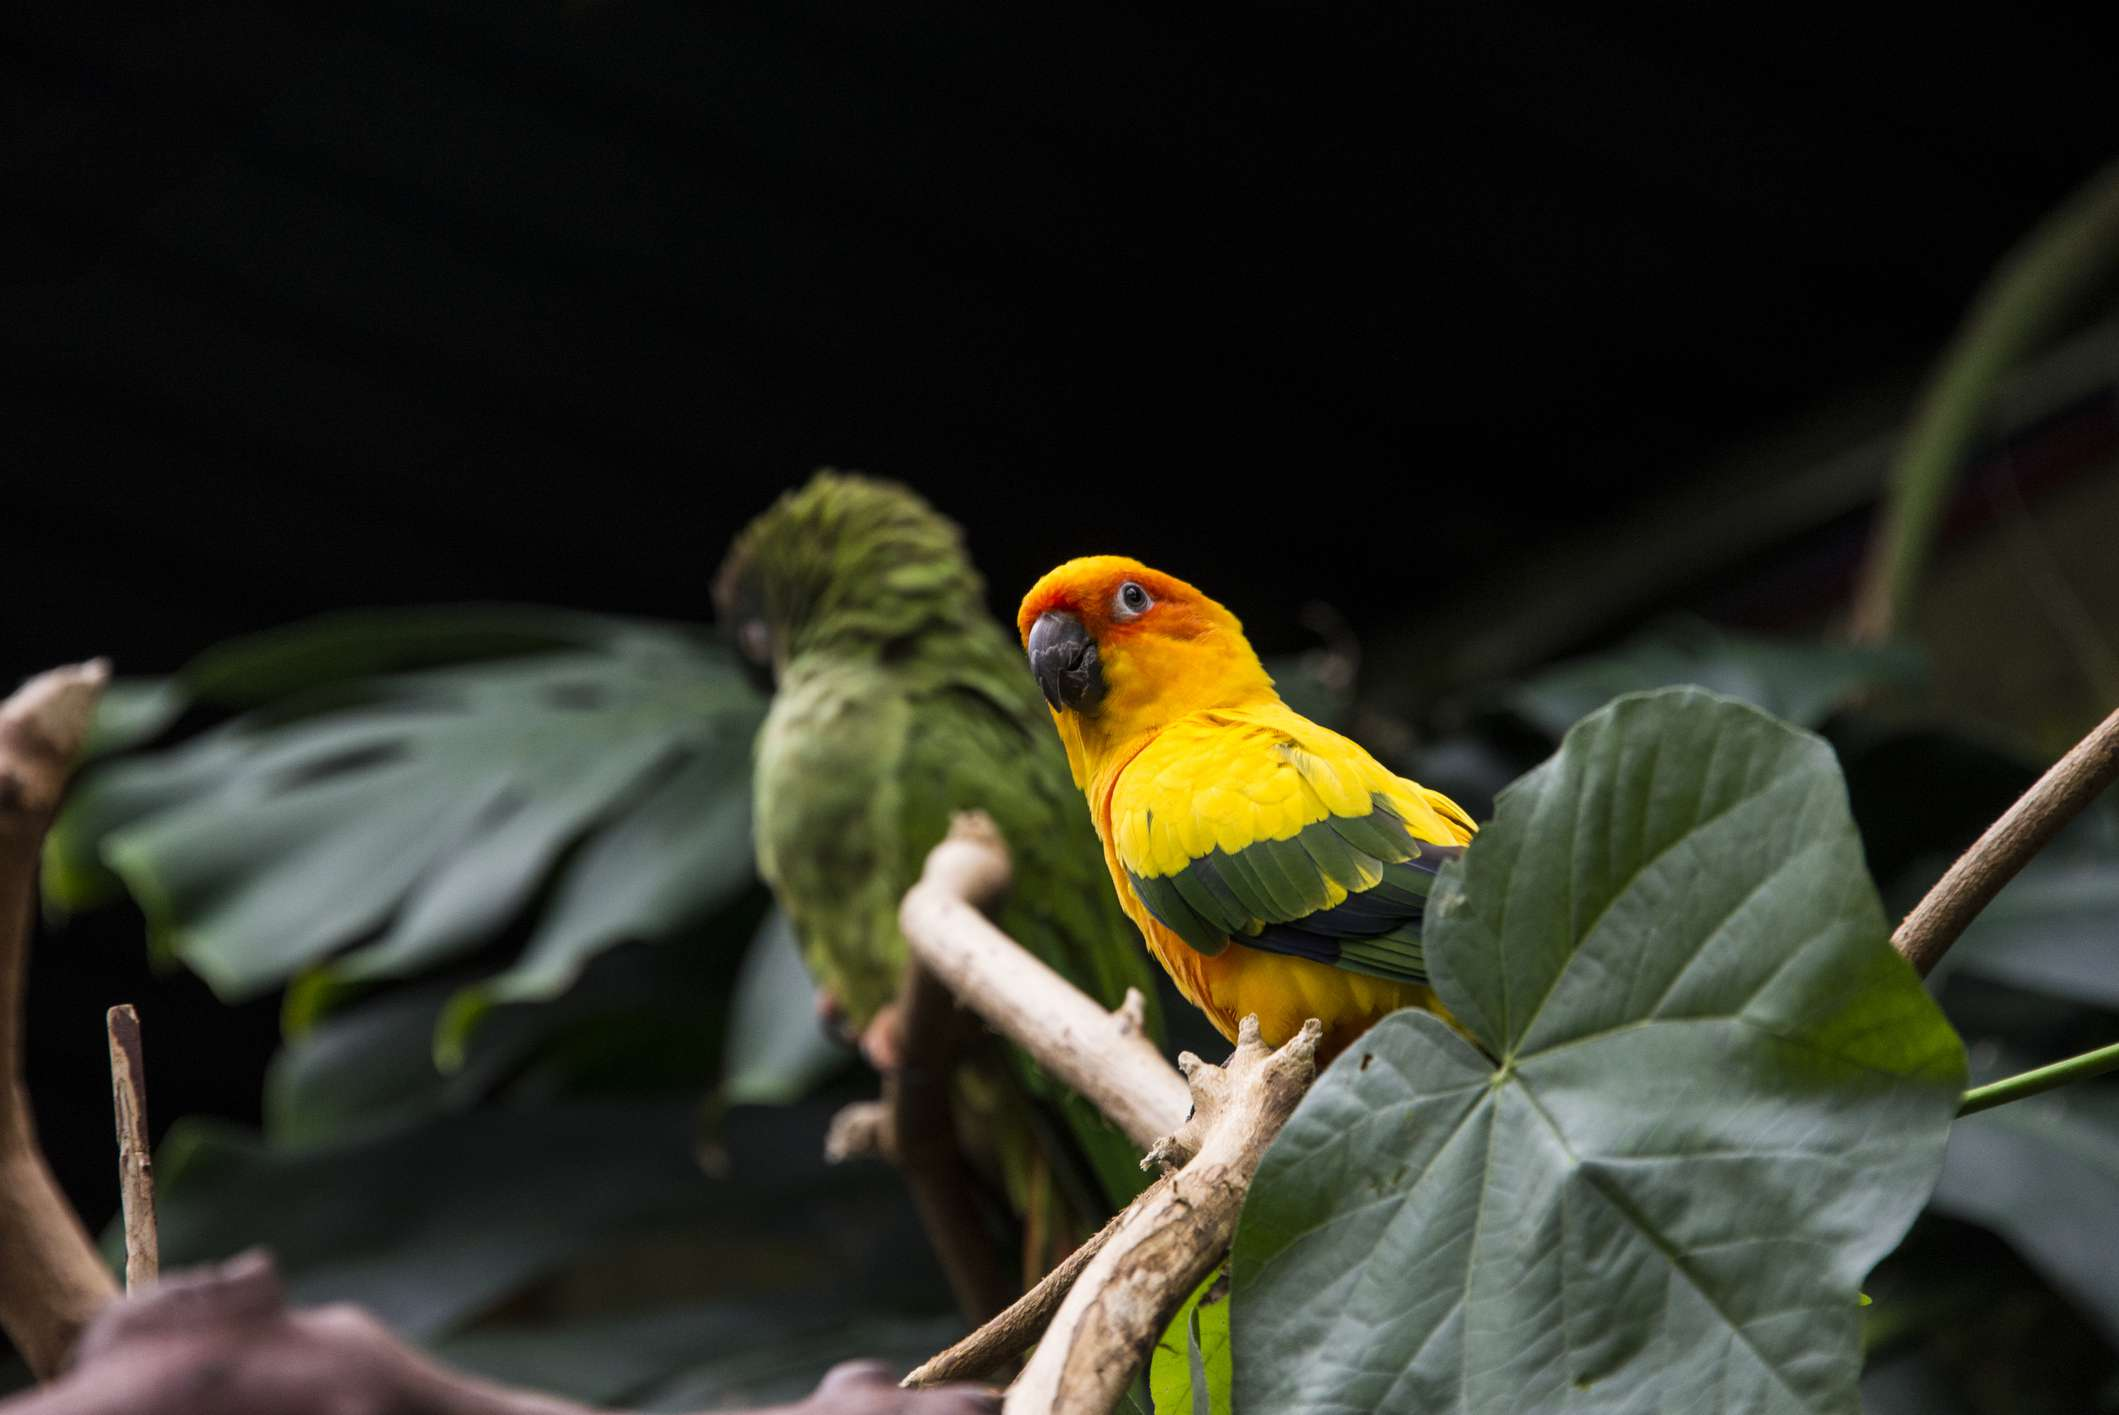 A bright yellow sun parakeet sitting on a branch with large green leaves.